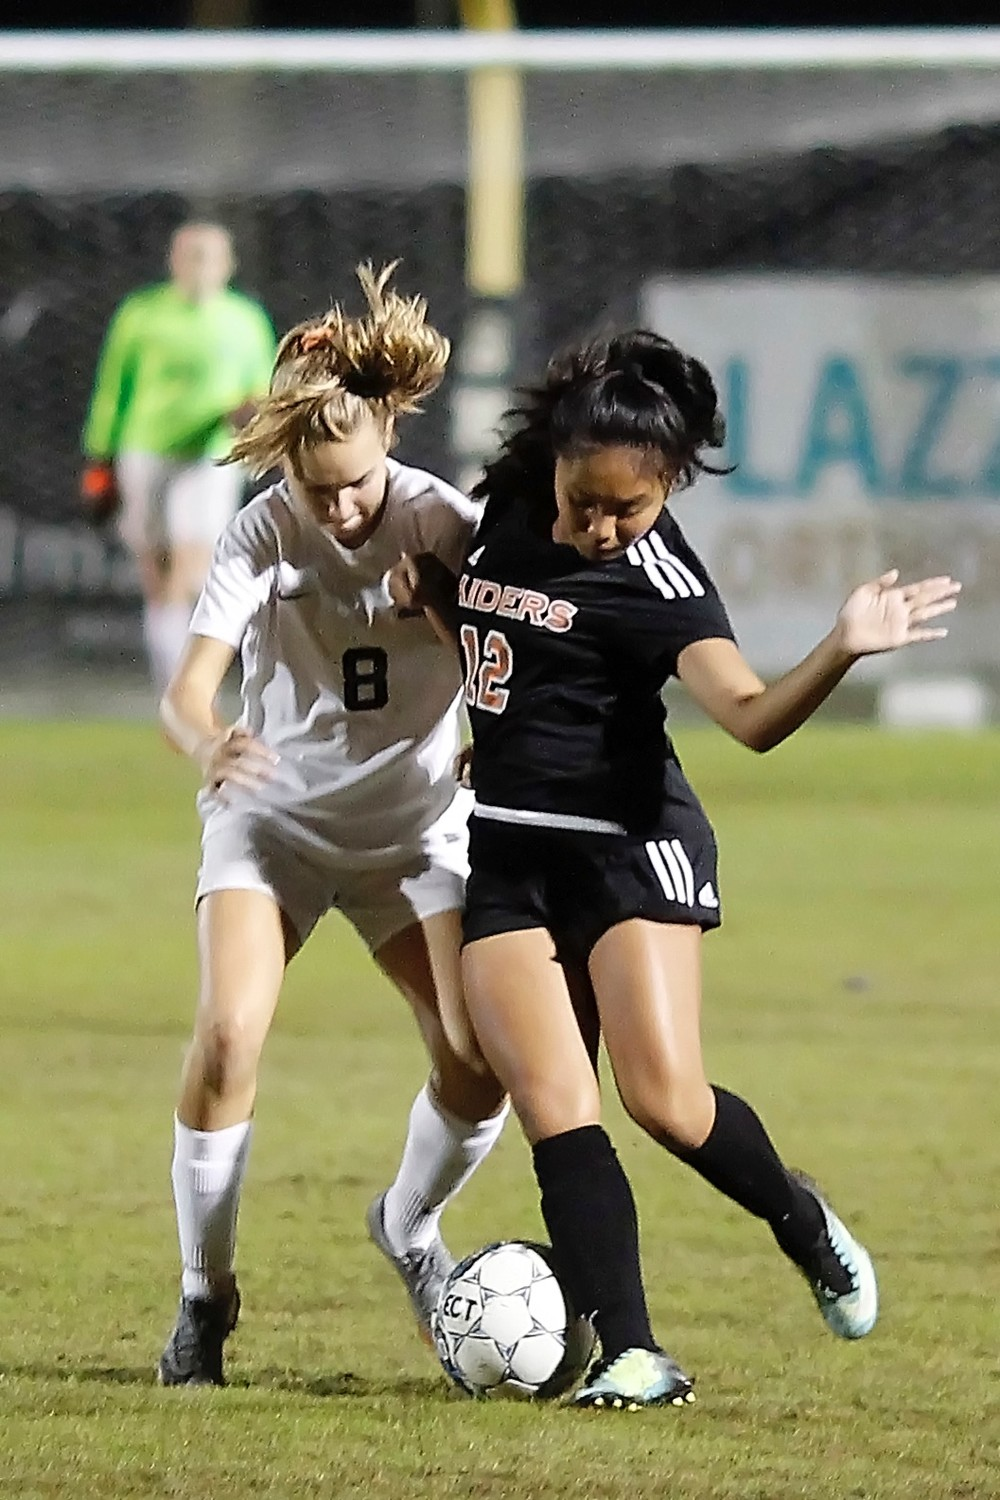 Cassidy Bierwagen fights for control of the ball for the Sharks.